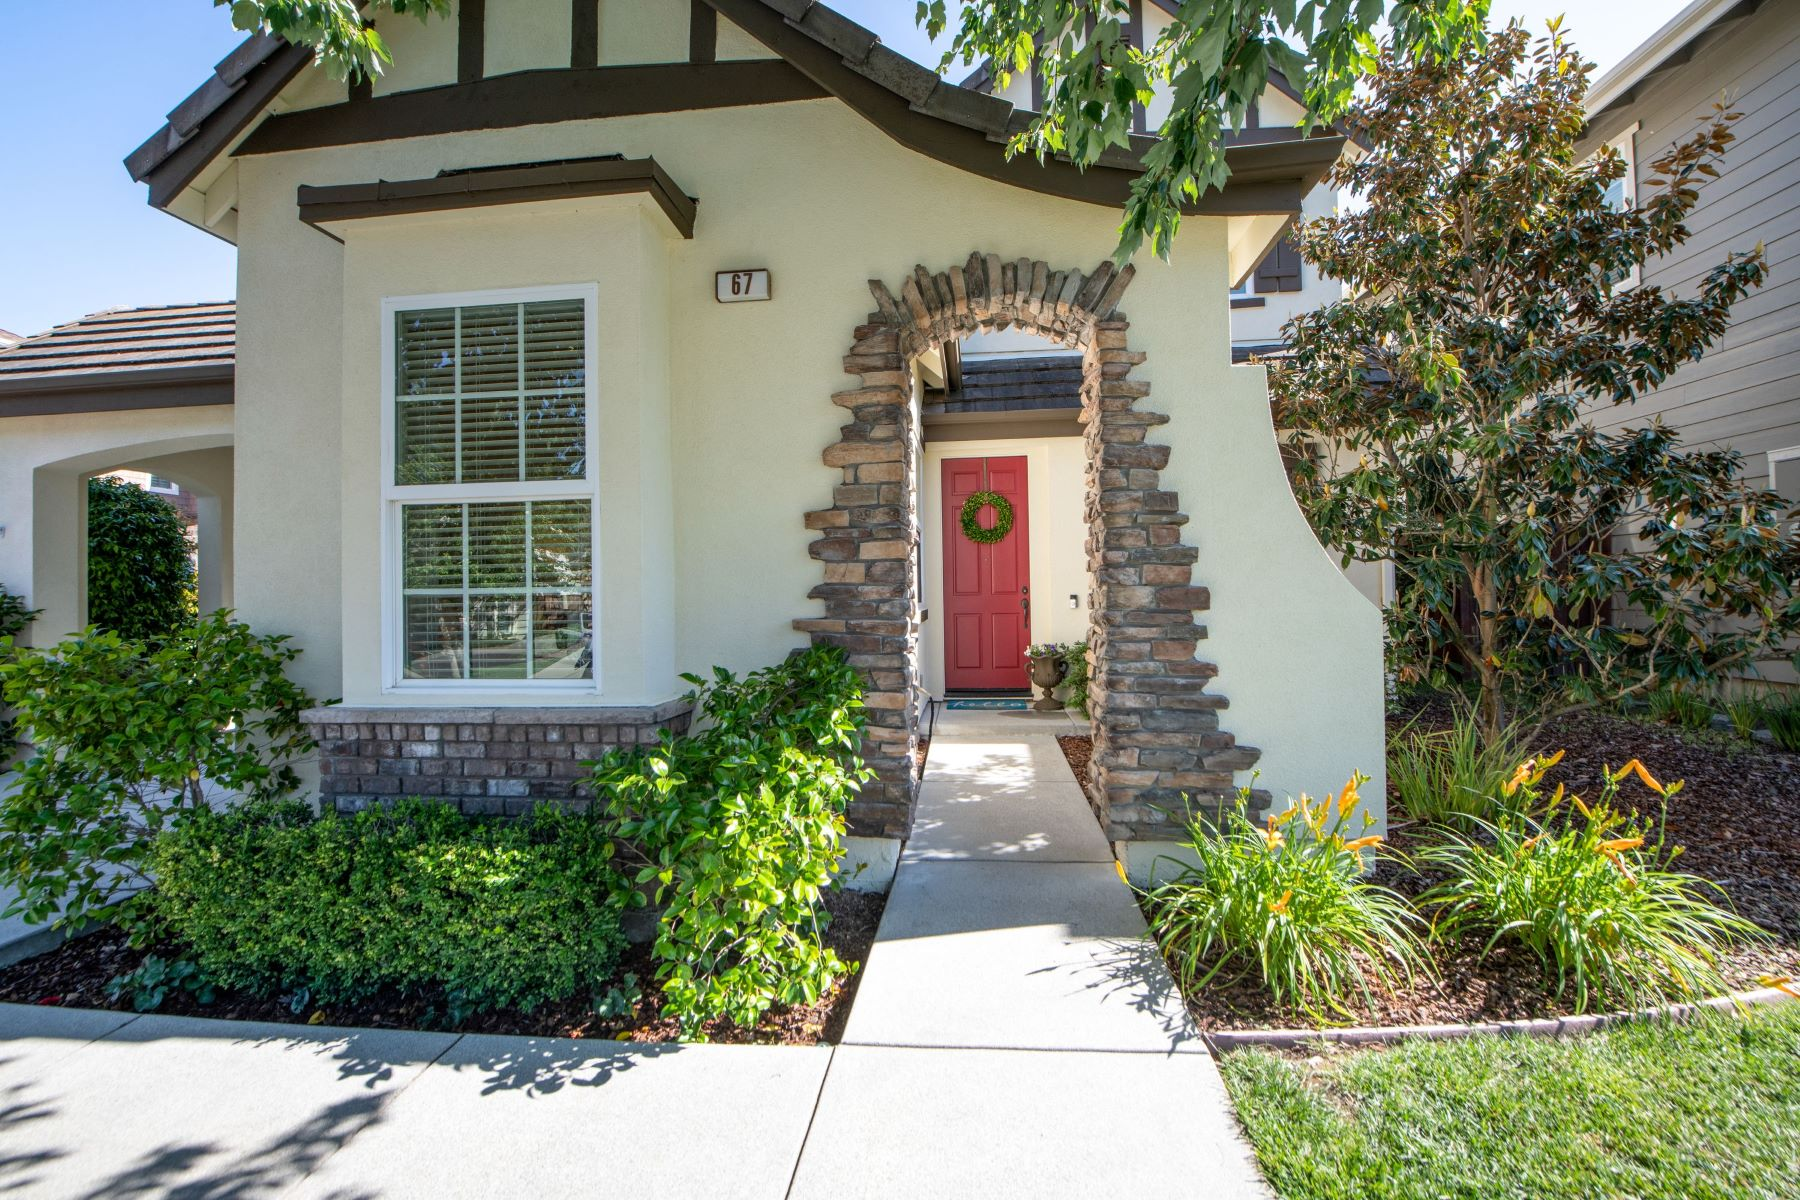 Single Family Homes for Active at Excellent Location in Pointe Marin 67 Oak Grove Drive Novato, California 94949 United States